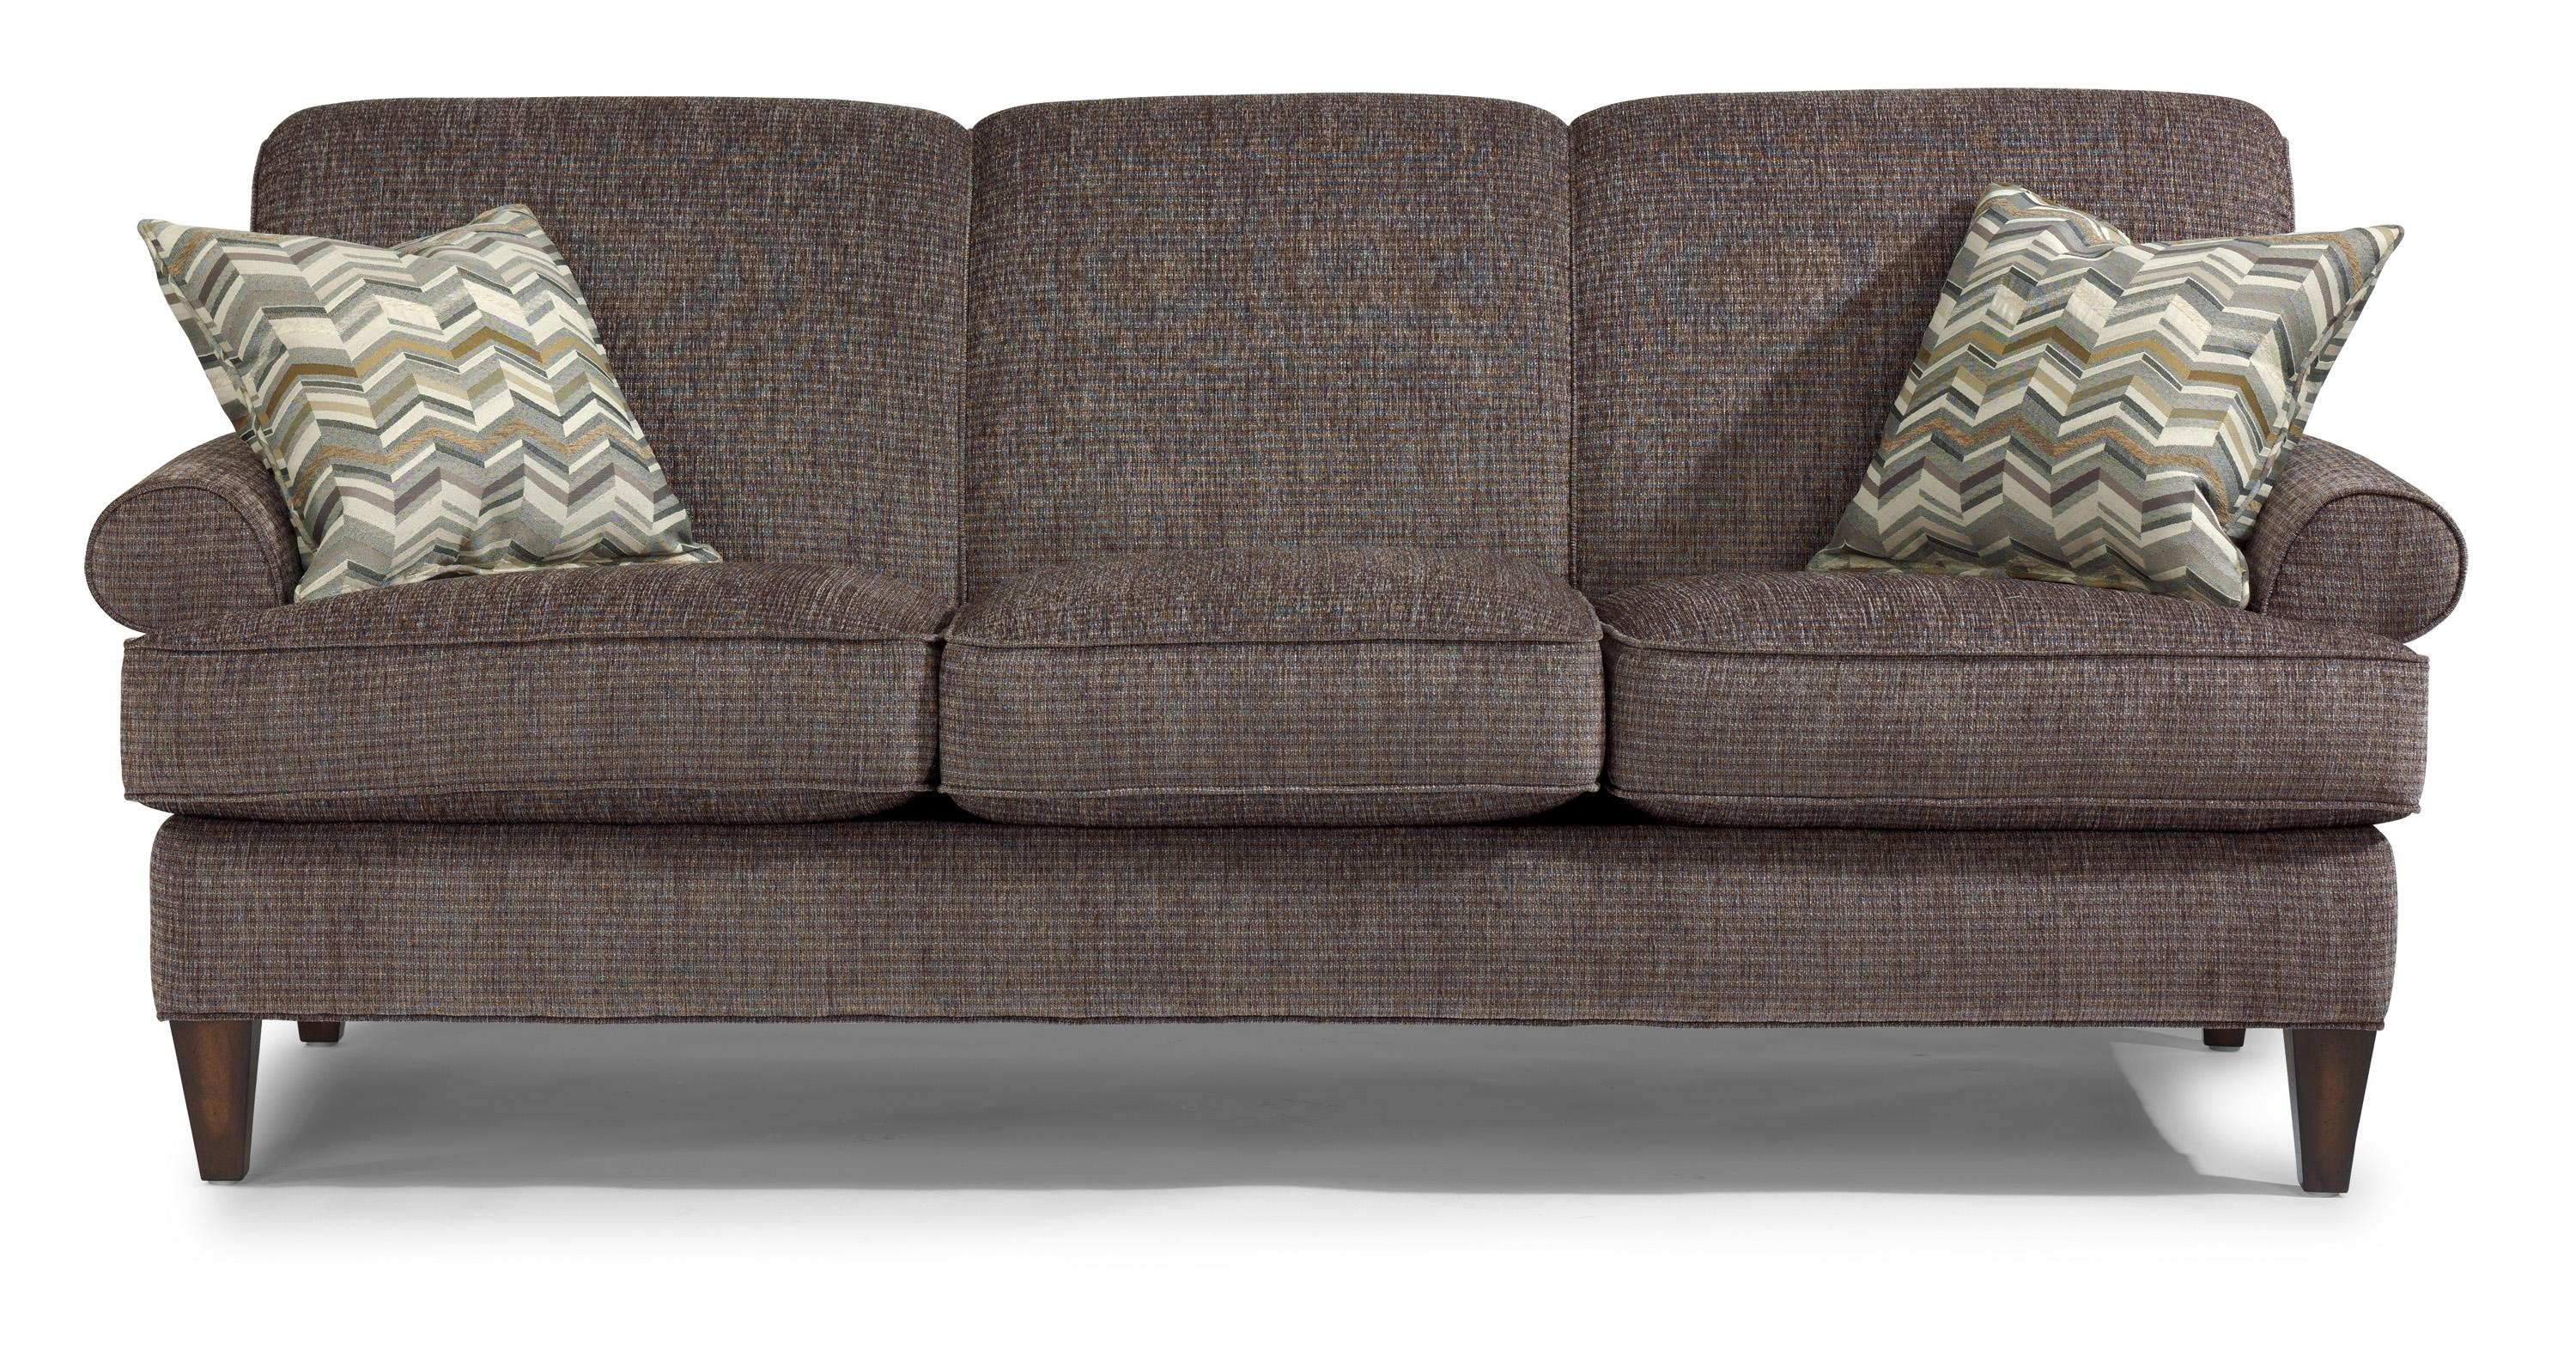 Flexsteel Venture 5654 31 Transitional Sofa With Rolled Arms And Tapered Legs Furniture And